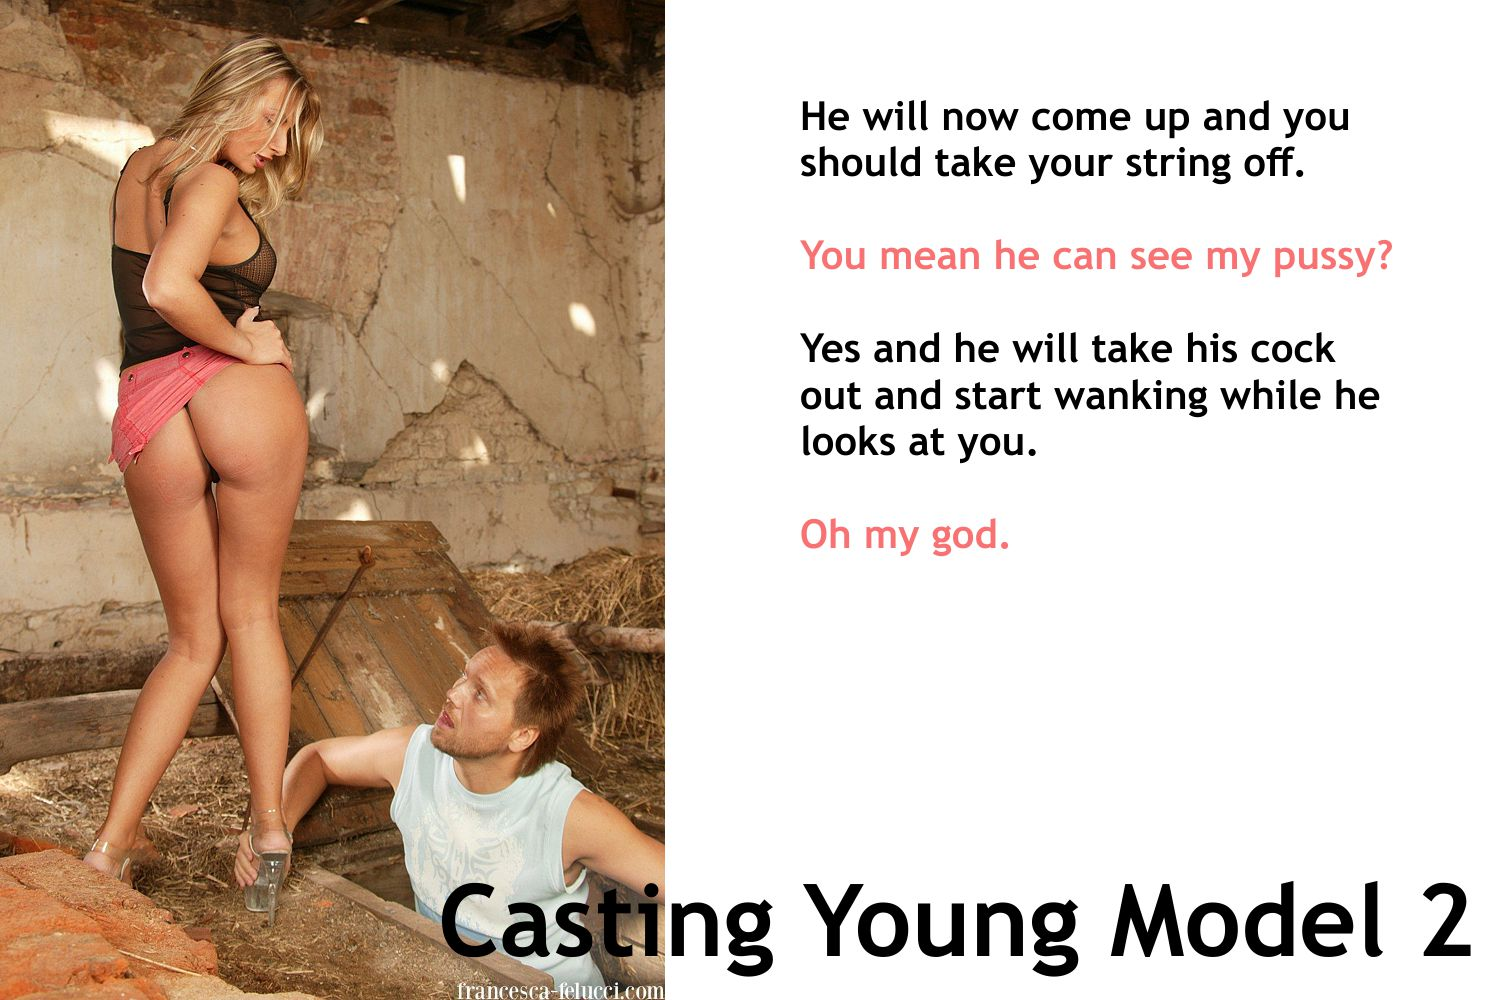 casting_young_model_2_004